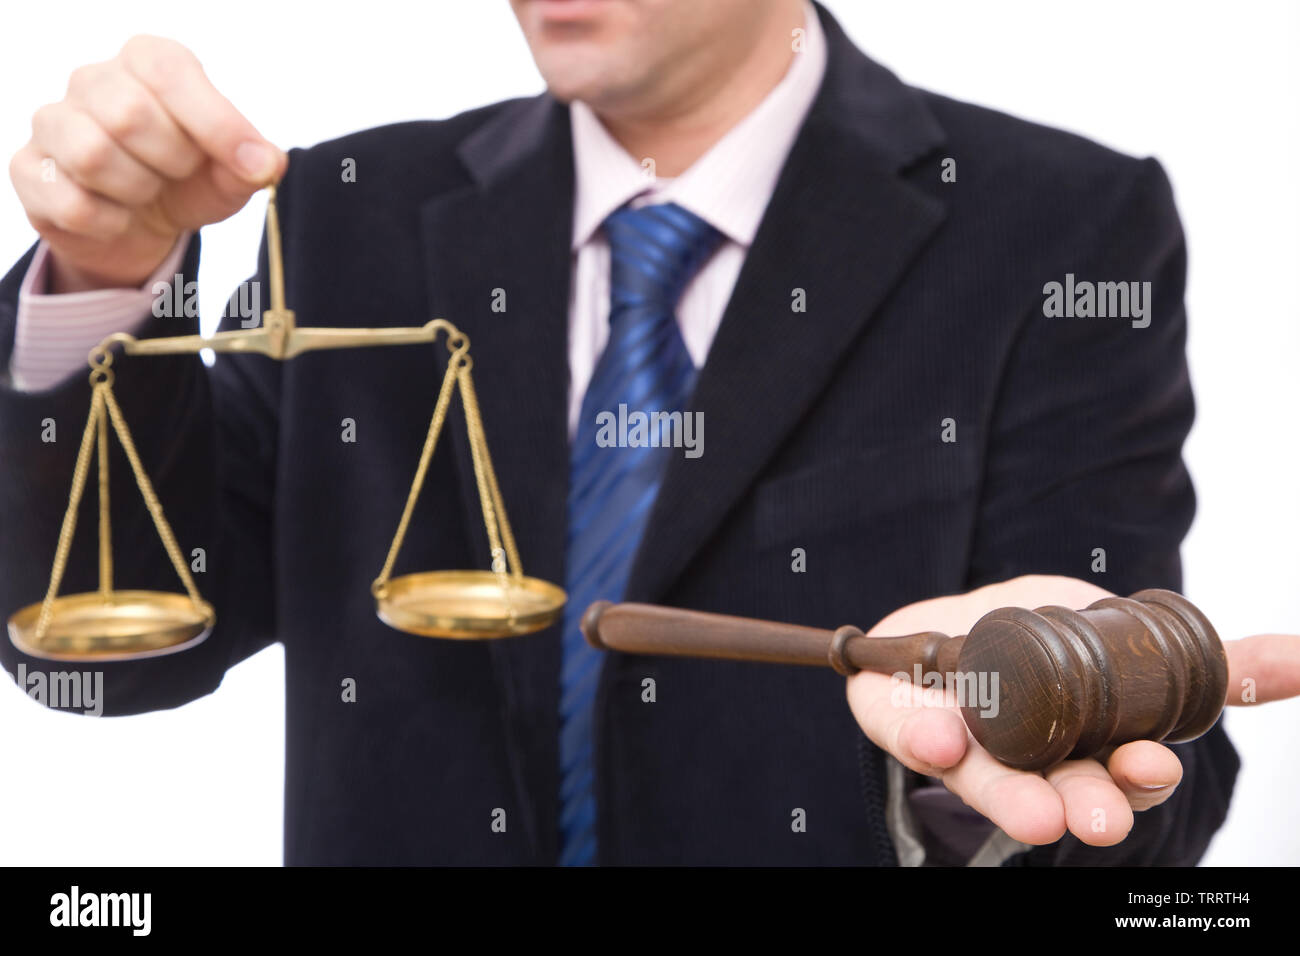 business and law concept with gavel and scales of justice - Stock Image